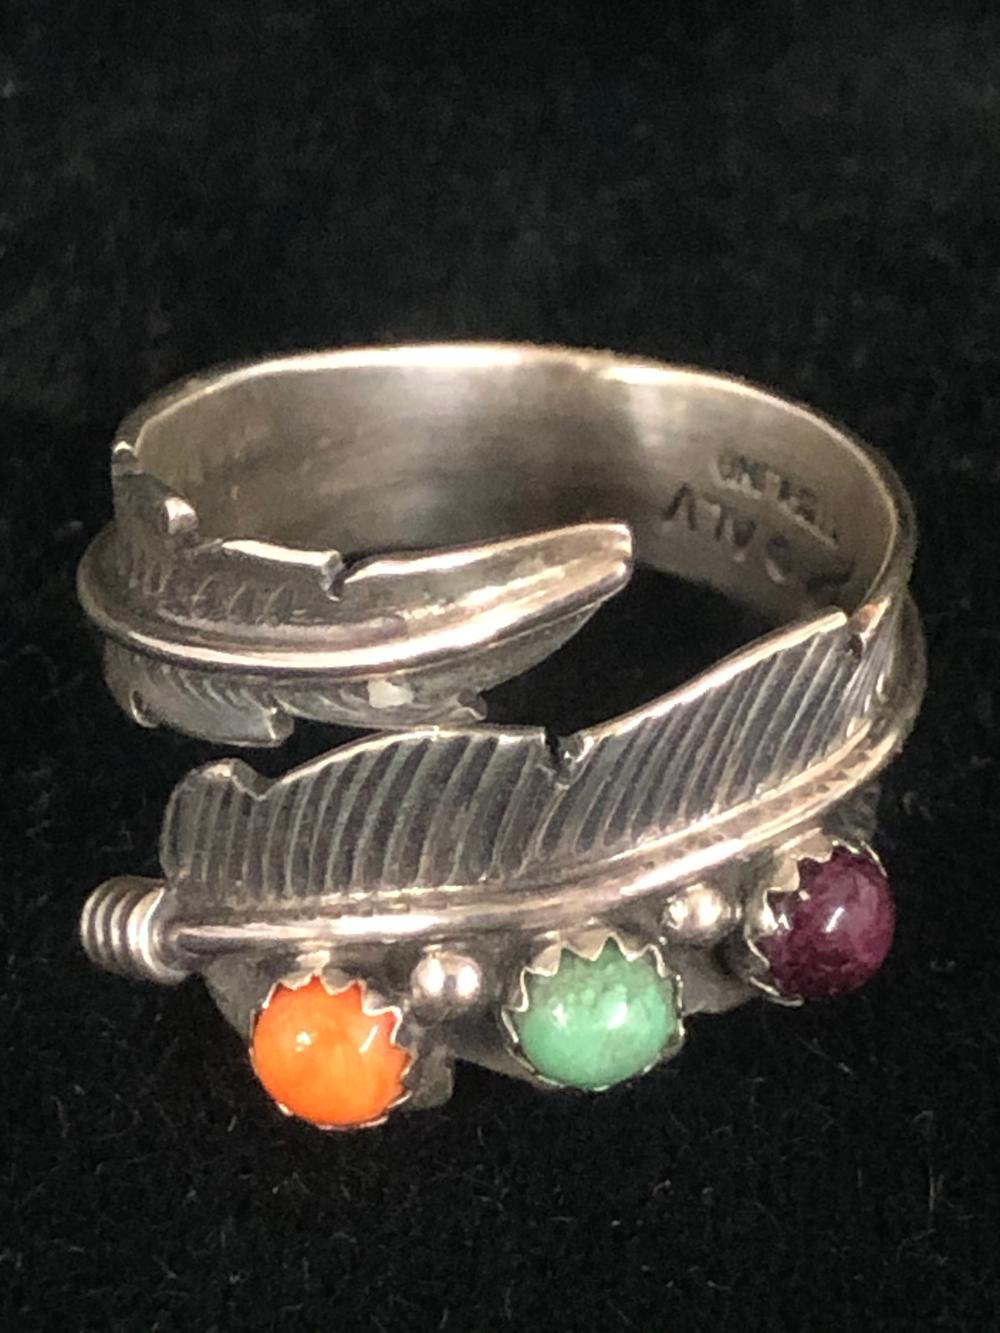 Feather wrap sterling silver ring with assorted stones